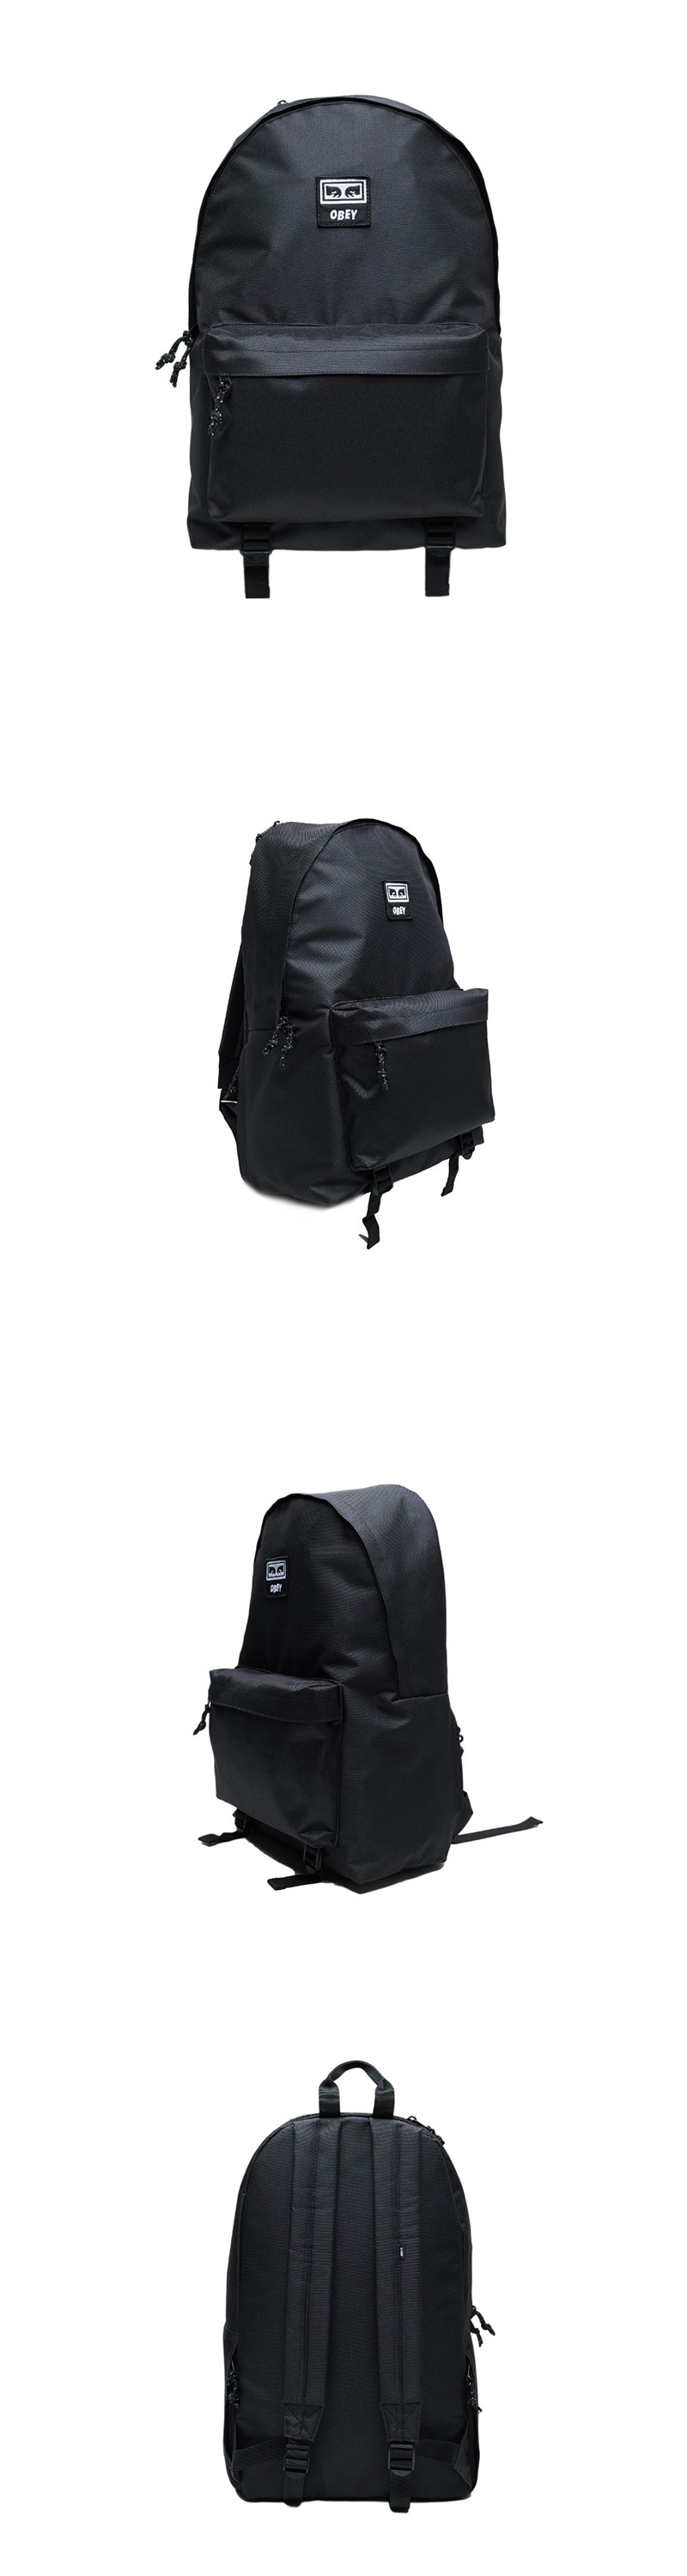 오베이 백팩 TAKEOVER DAY PACK 100010120 BLACK